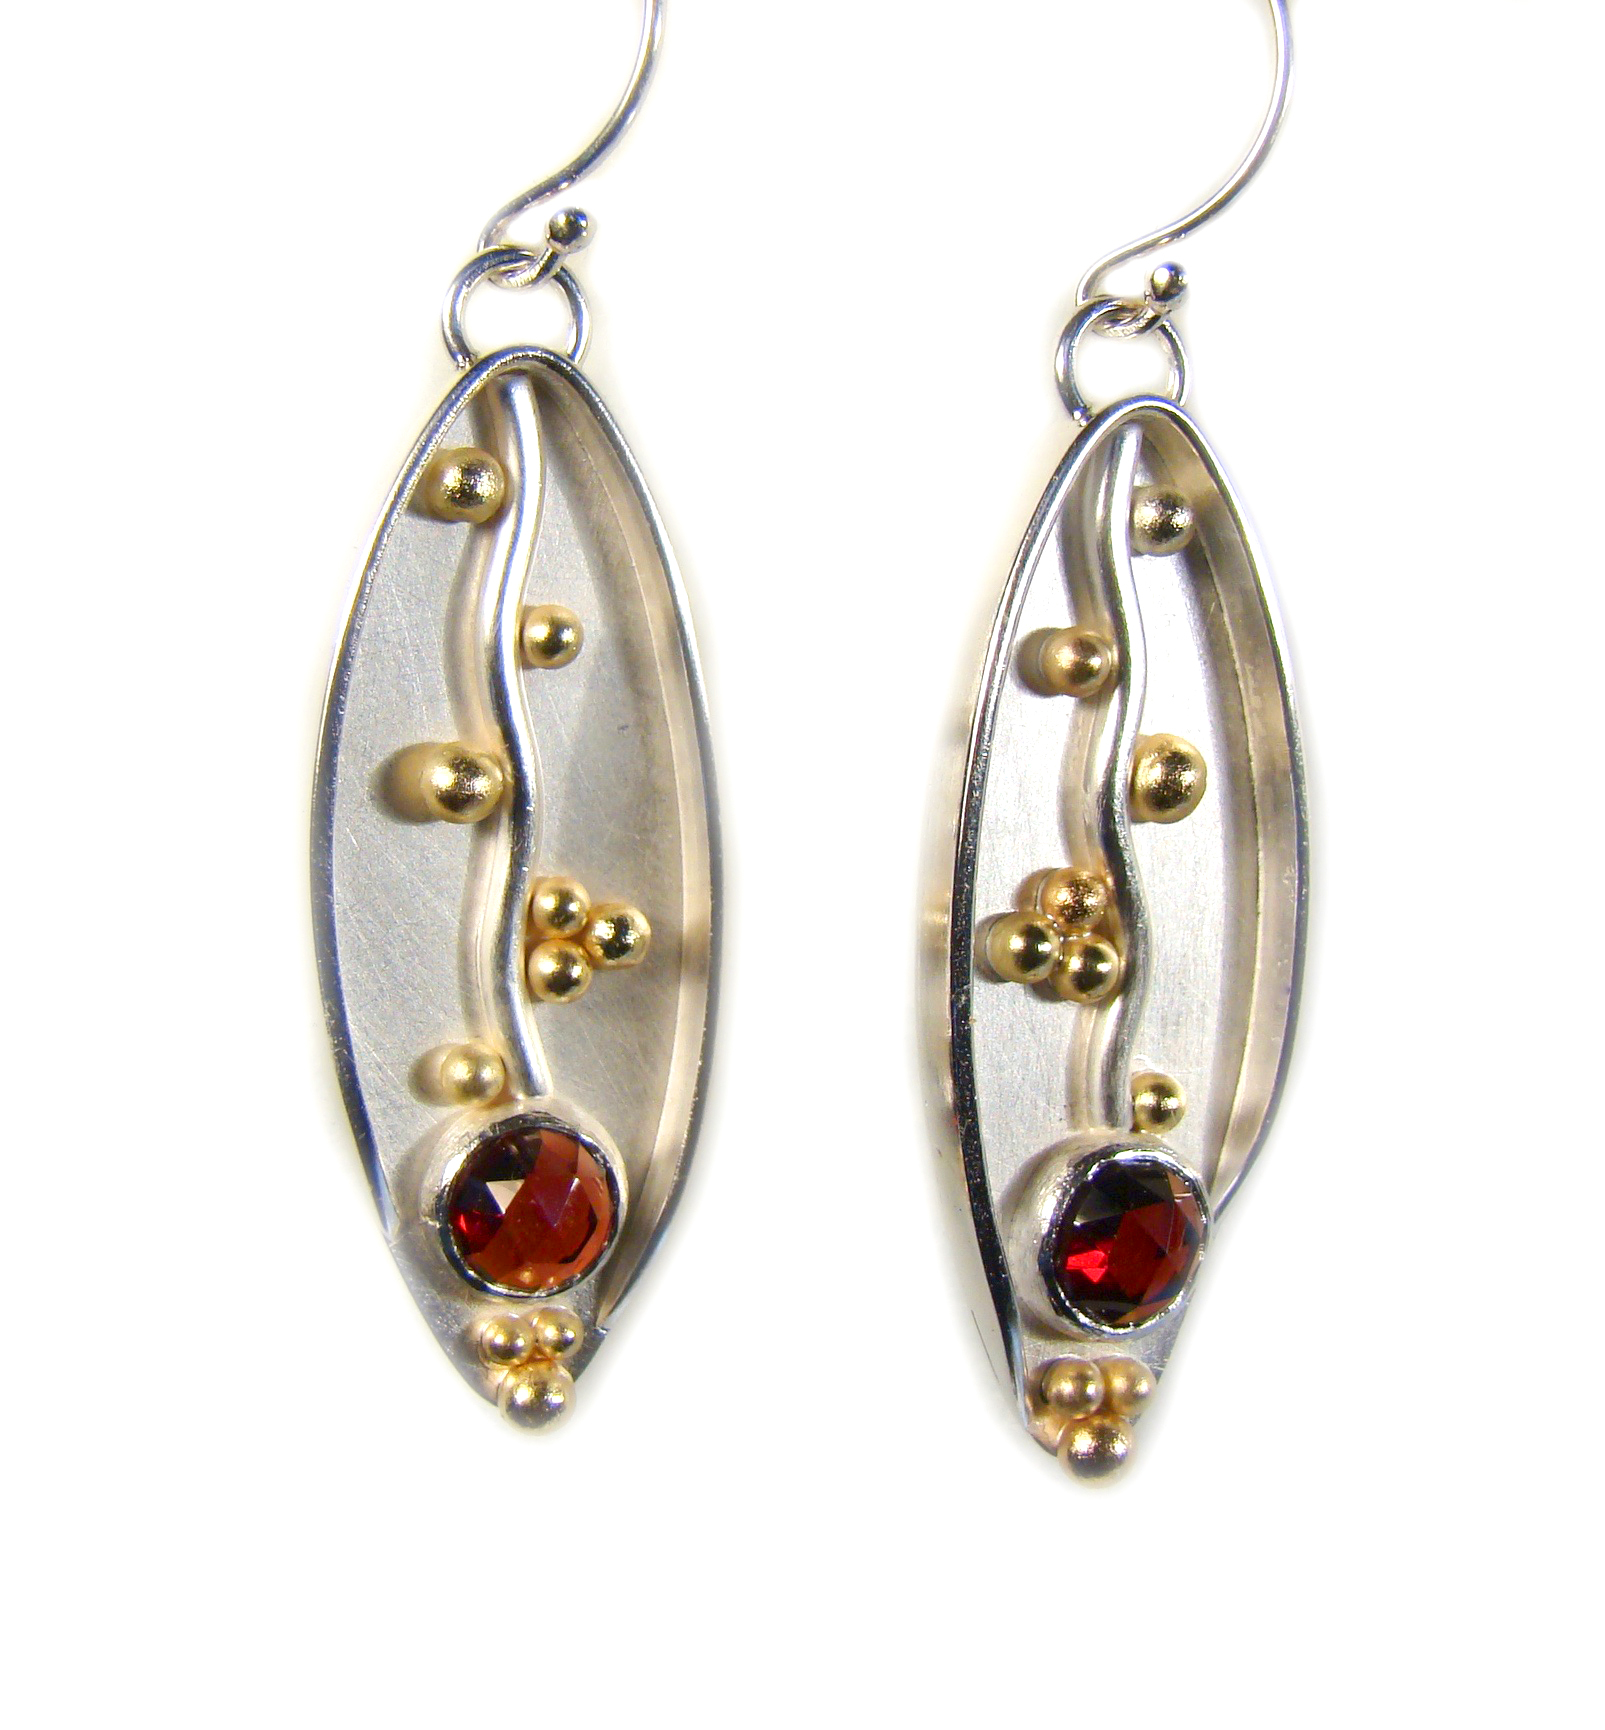 Rose cut garnet earrings #859.jpg